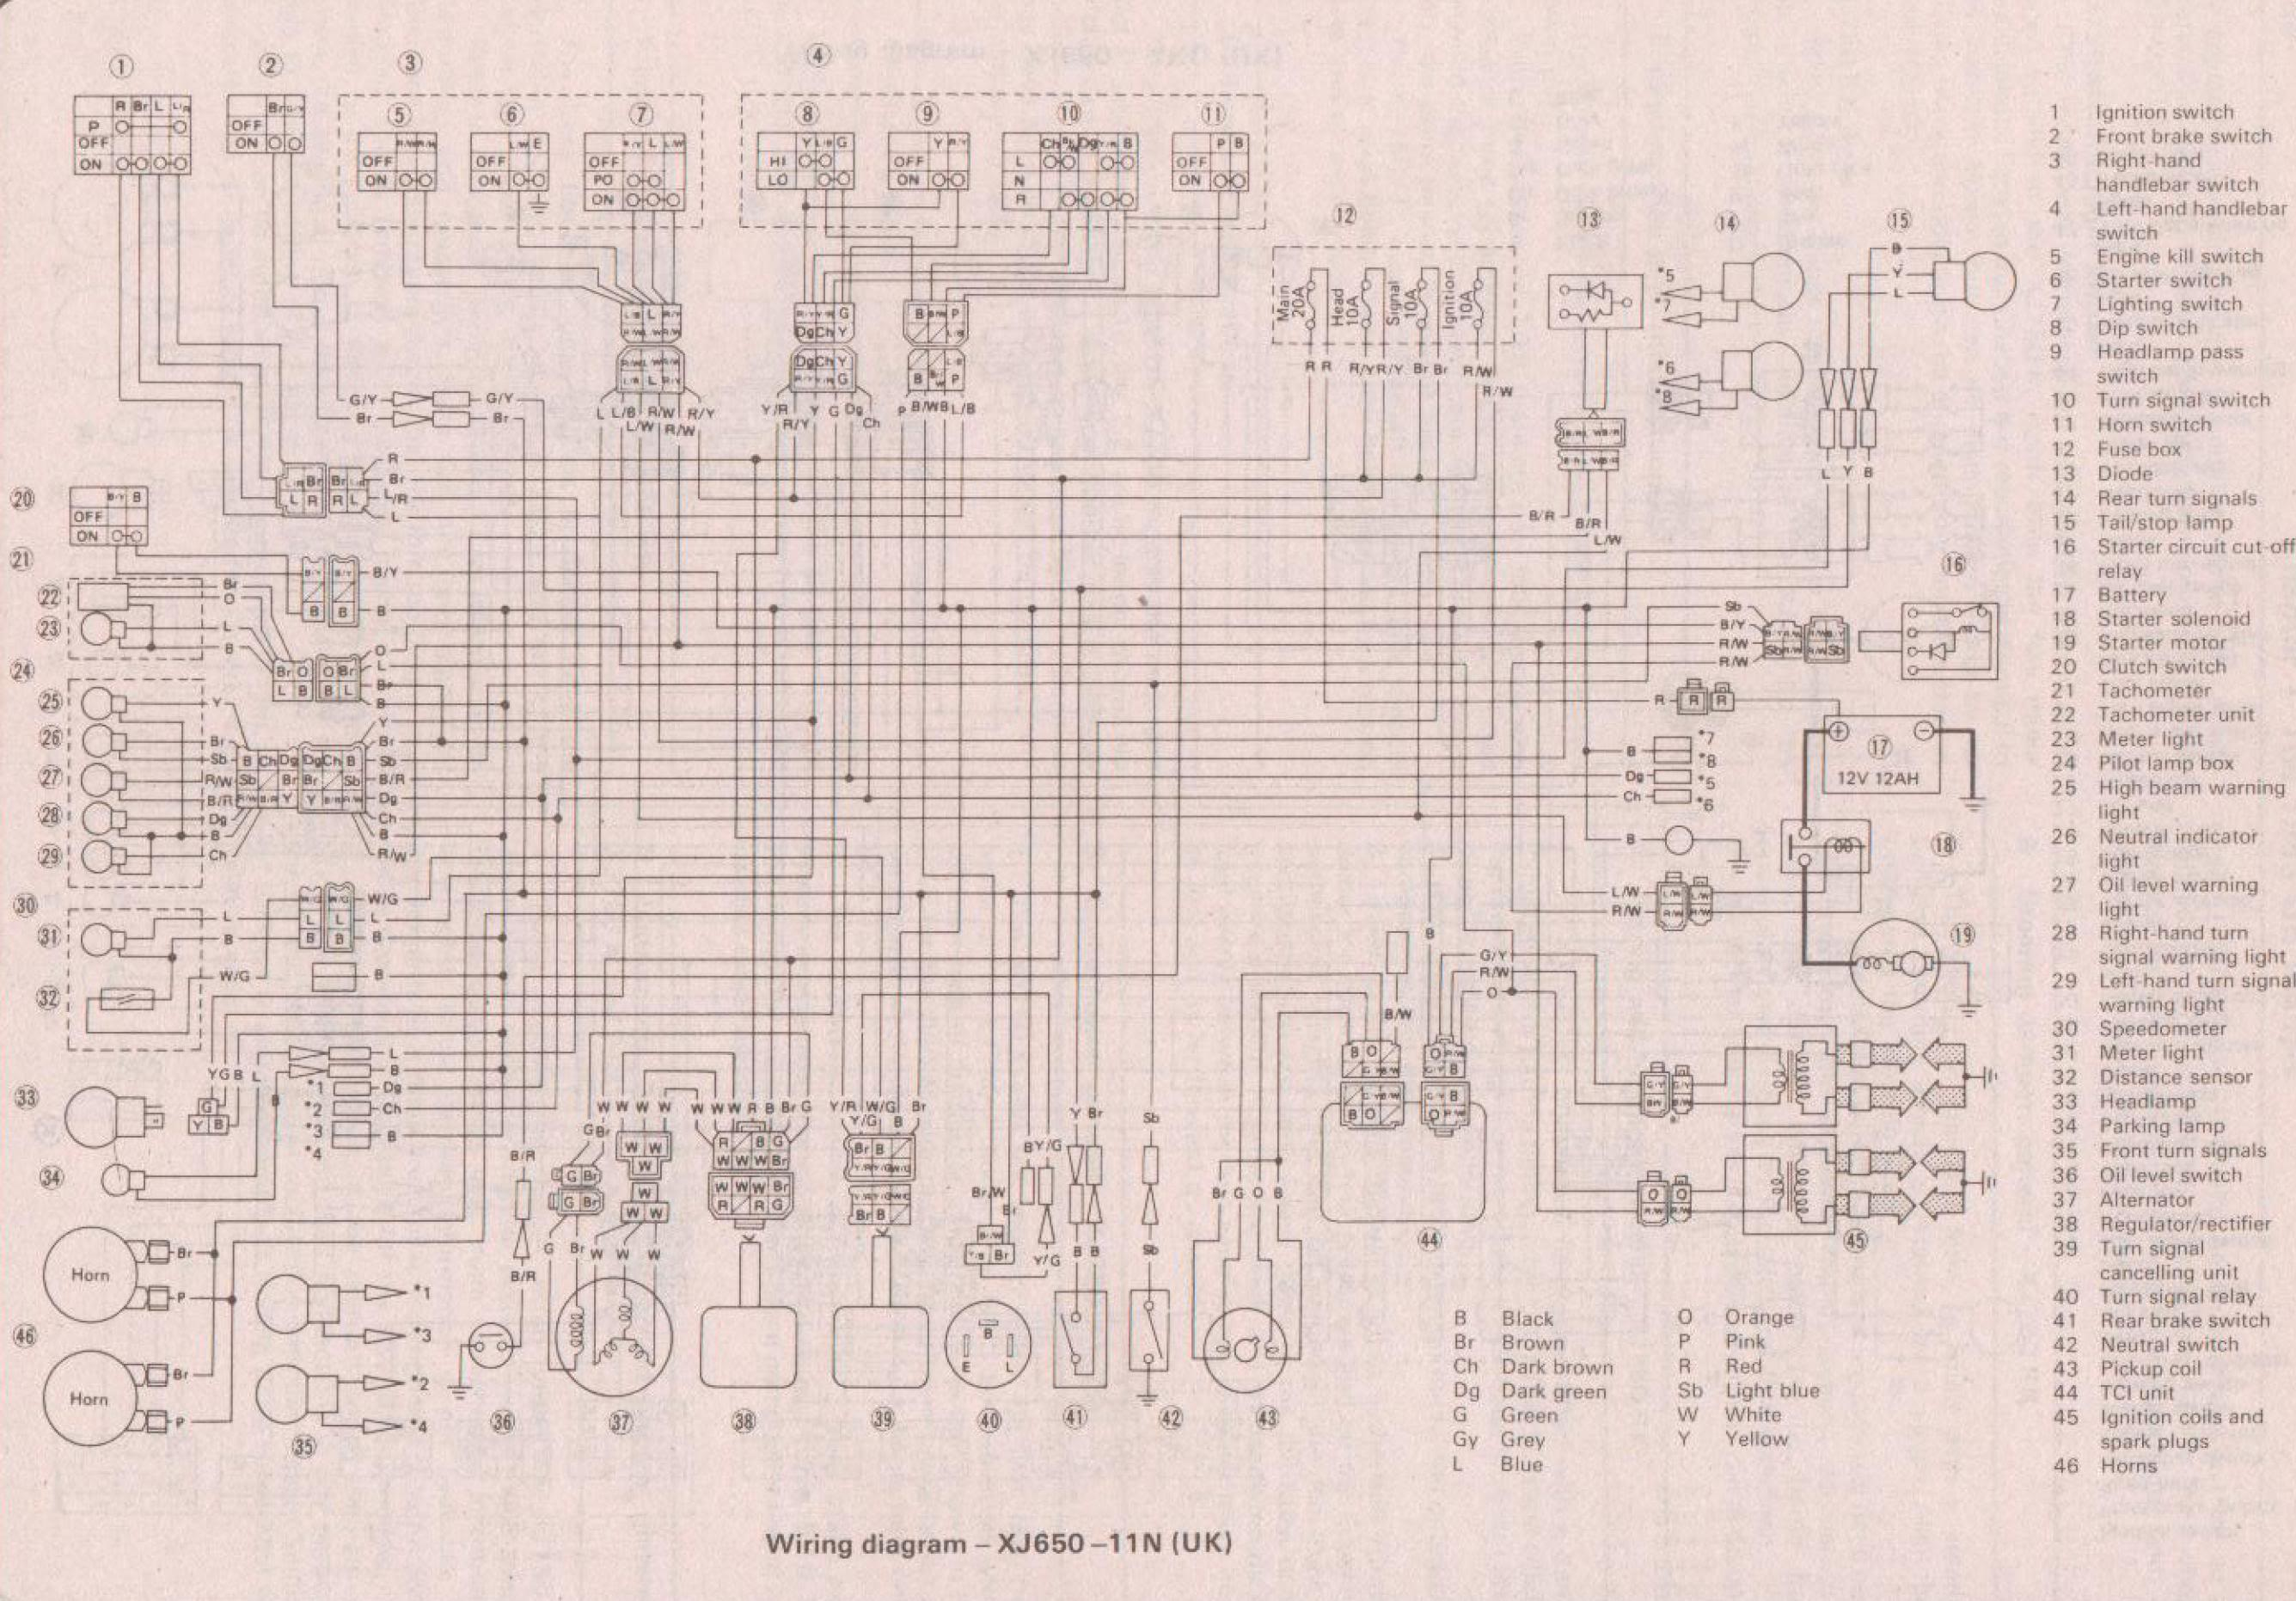 Yamaha Seca Wiring Diagram And Schematics 1982 Virago 920 Xj650 Example Electrical U2022 Rh Huntervalleyhotels Co 2